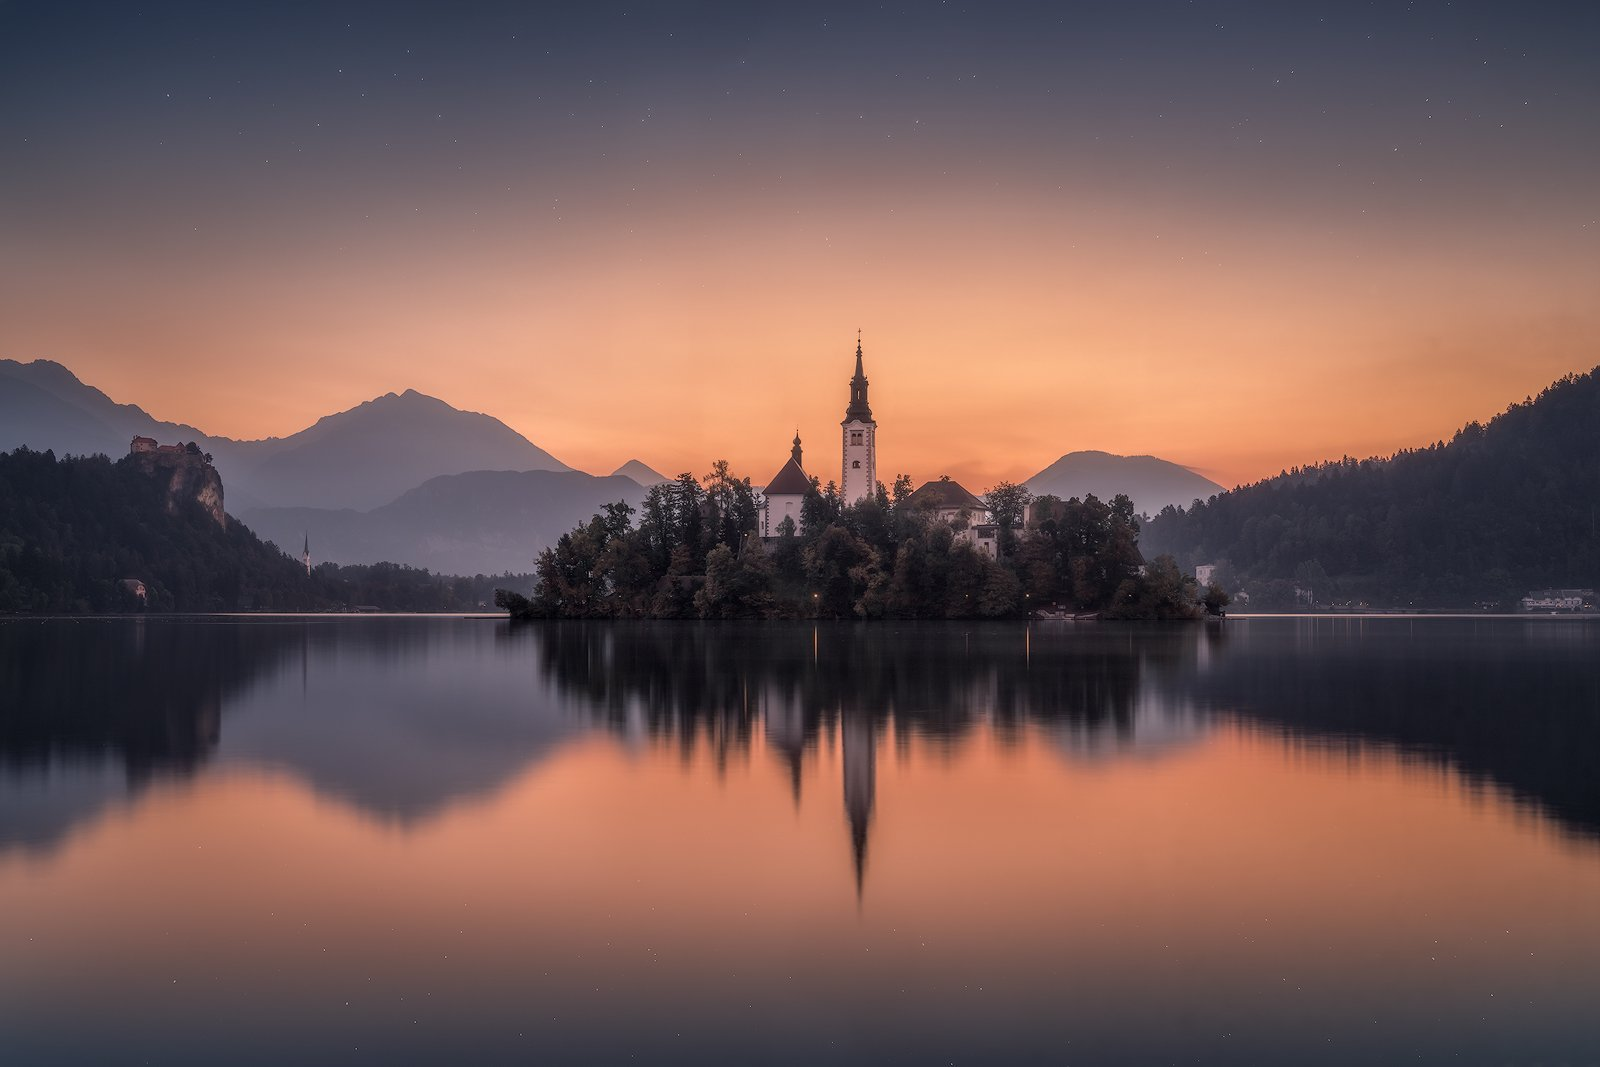 before sunrise, bled, blue, blue hour, calm waters, calmness, castle, church, church tower, cliff, clouds, forest, hills, island, lake, lake bled, lights, morning, mountain range, mountains, outdoors, reflections, rock, serenity, silence, sky, slovenia, s, Ludwig Riml